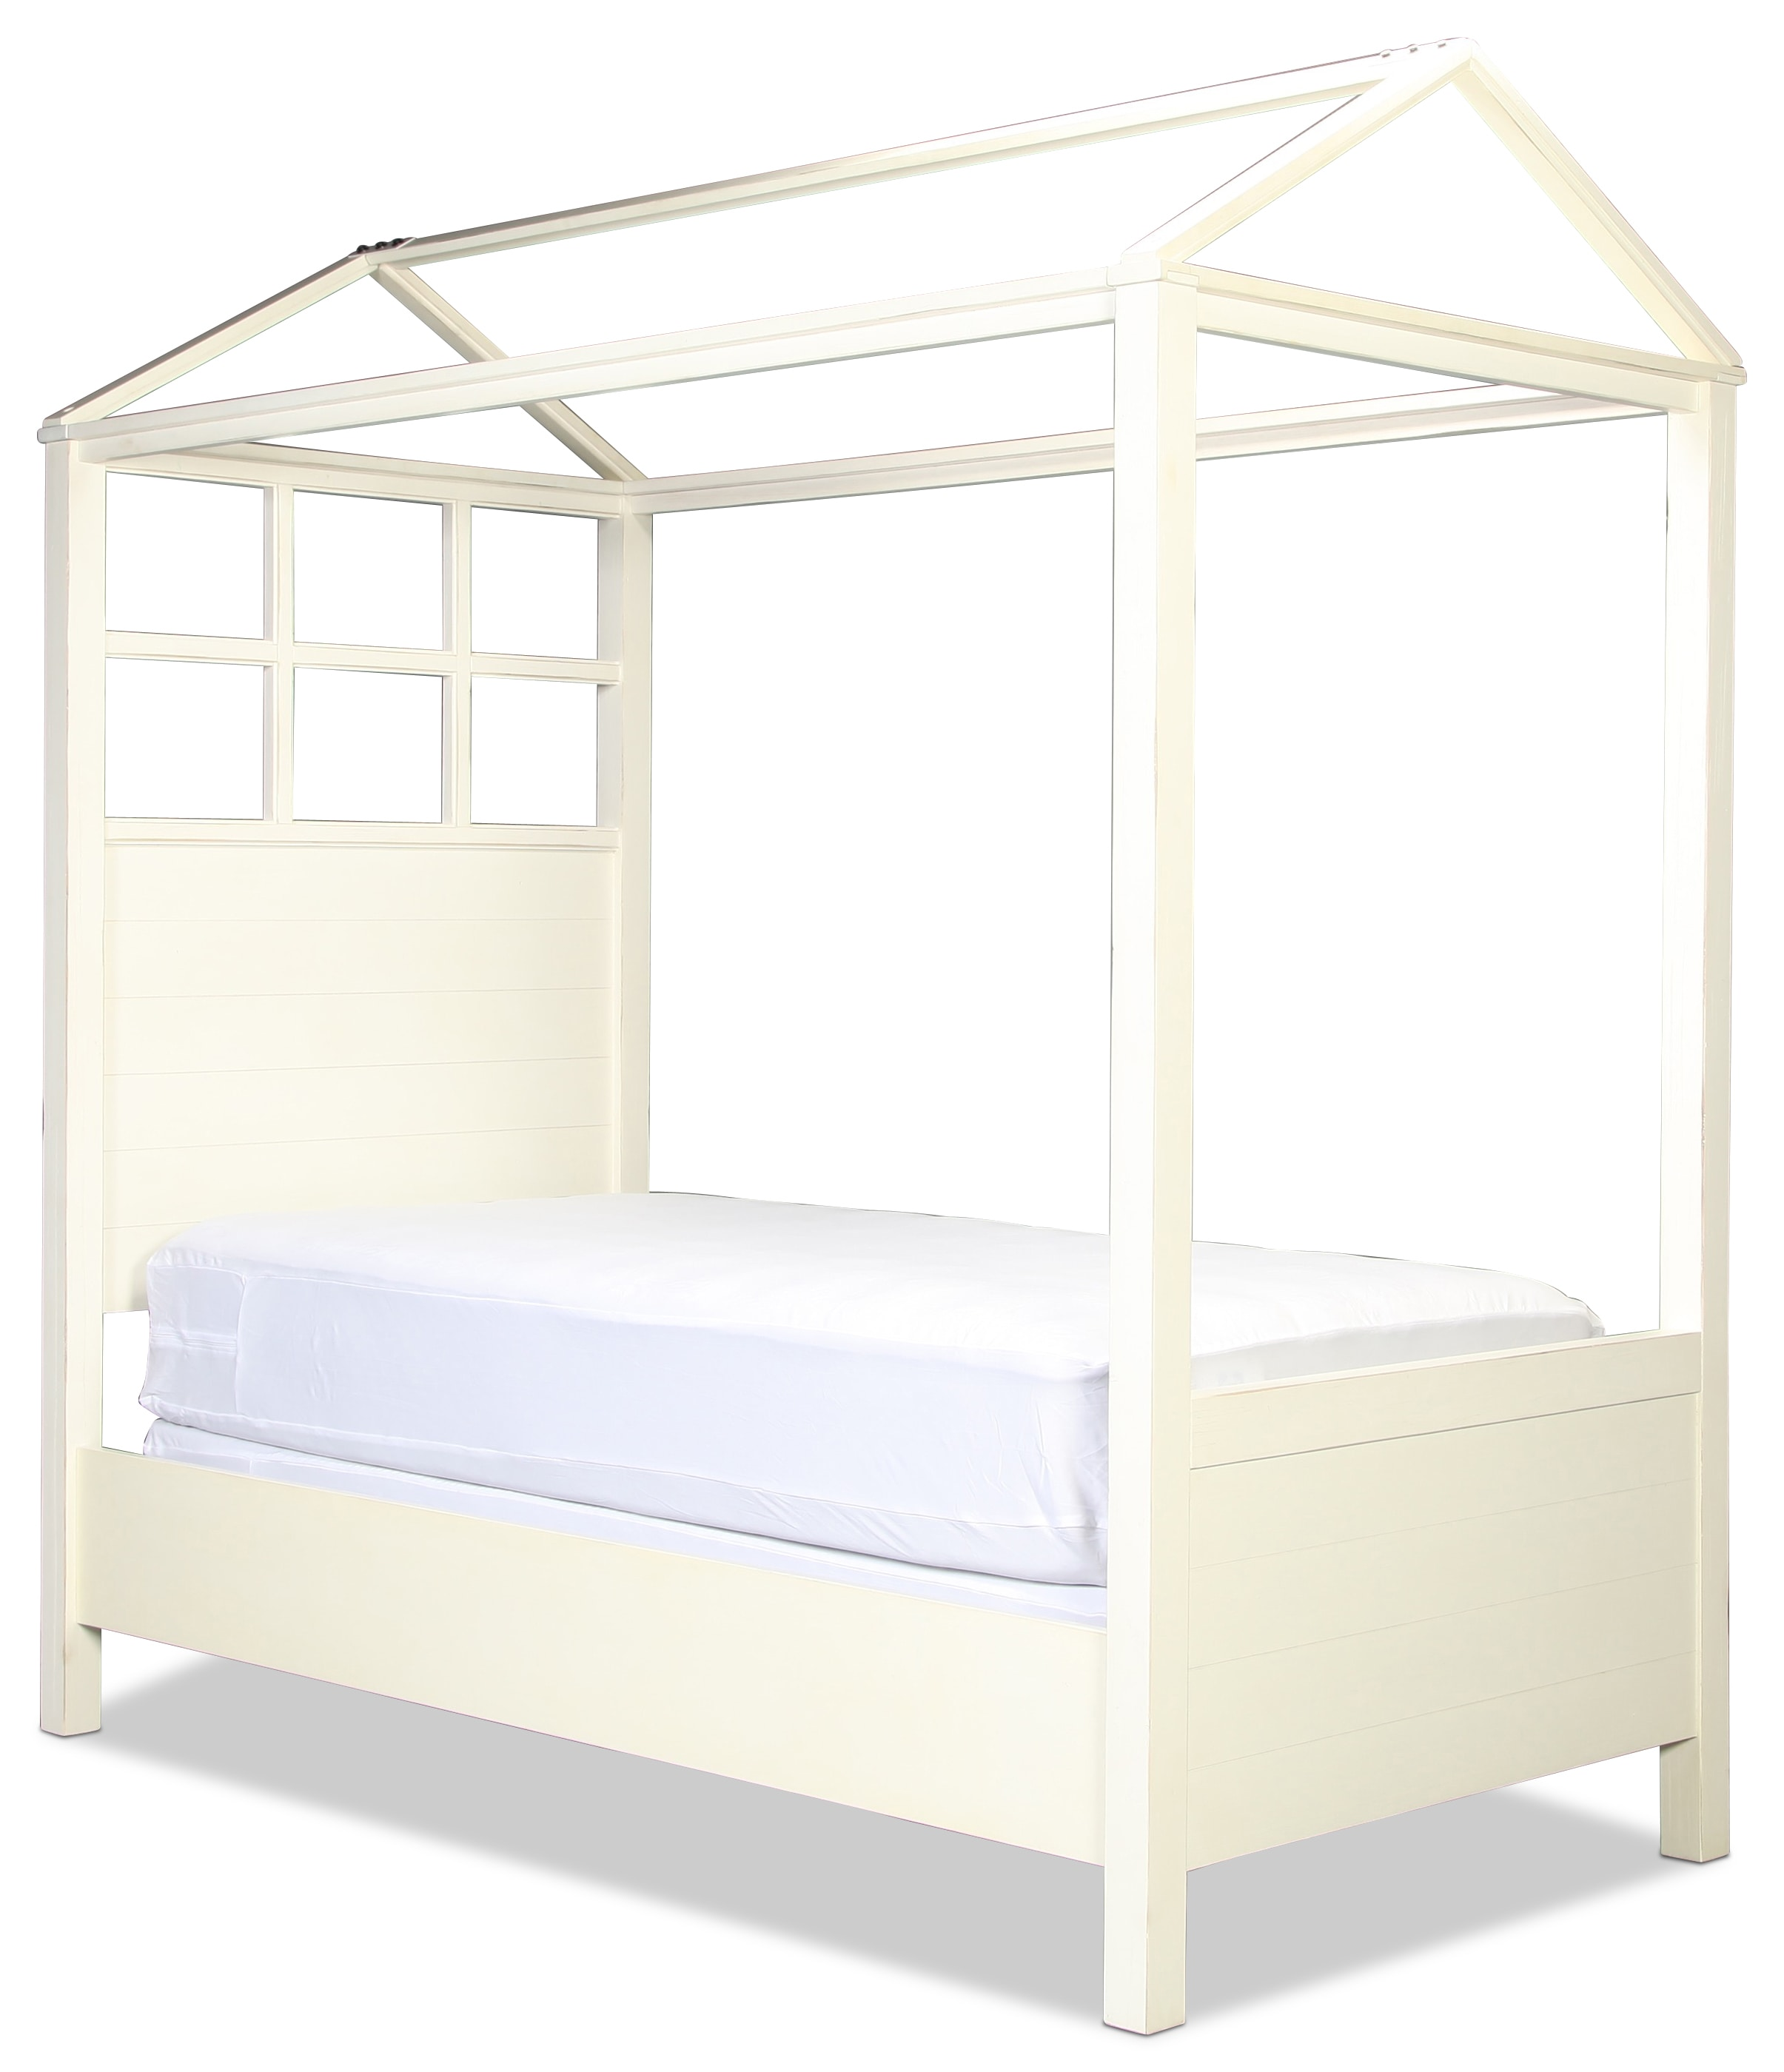 Magnolia Home Twin Playhouse Canopy Bed